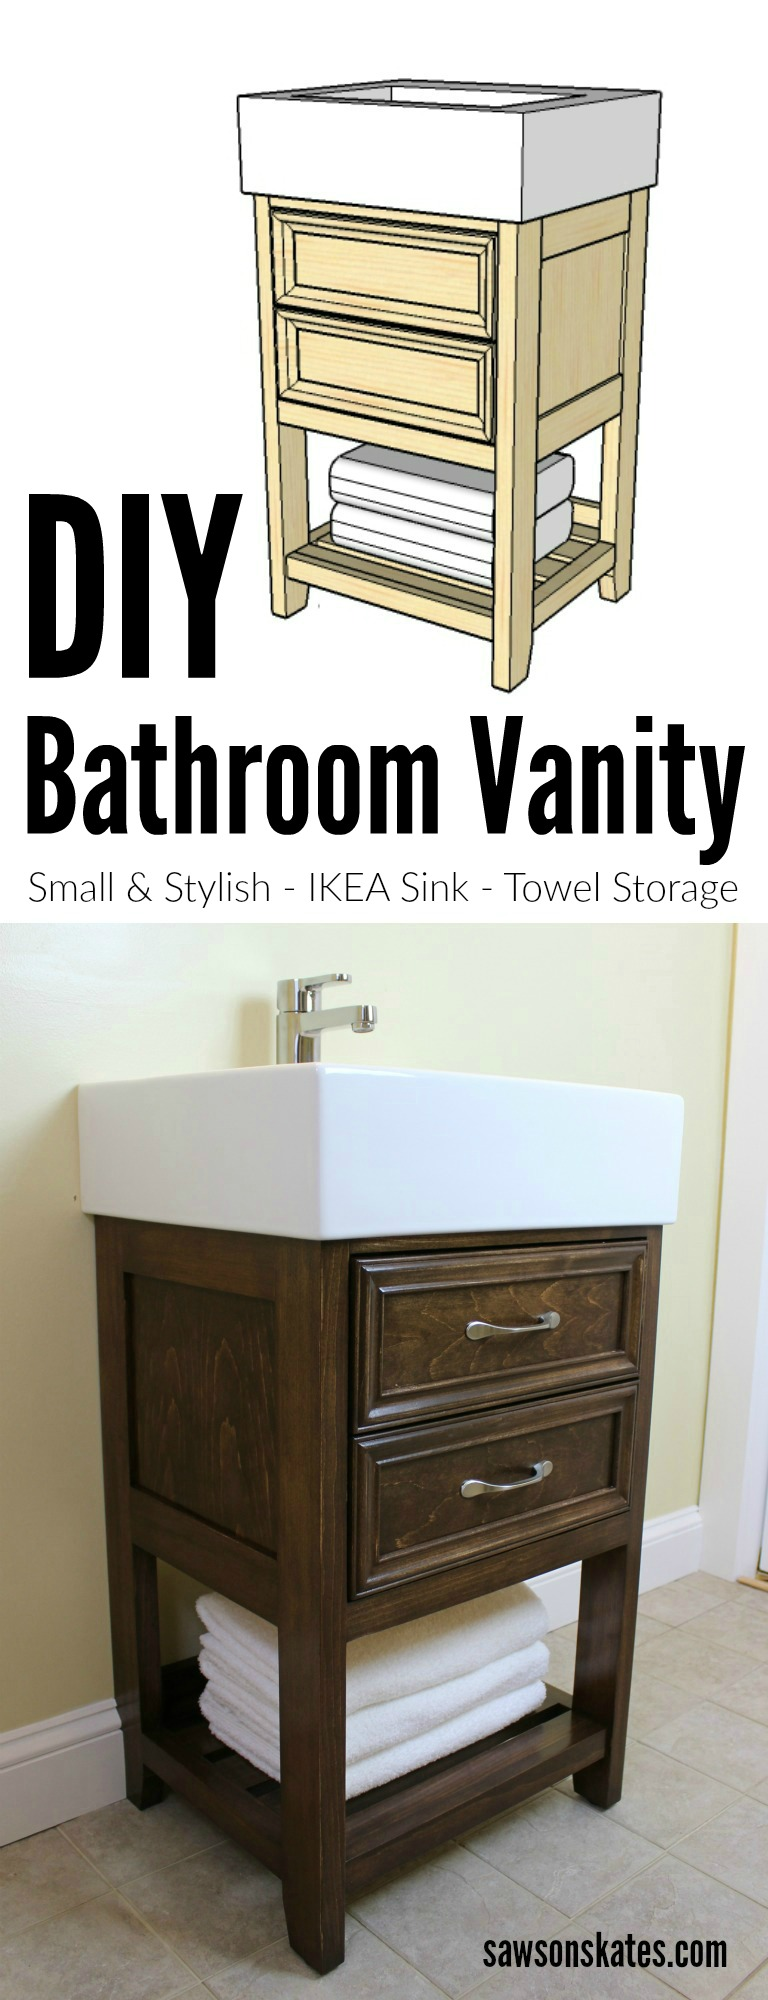 Looking for small DIY bathroom vanity ideas? Check out the plans for this DIY vanity designed to look like a small dresser. It features book-matched panels , faux drawers and an IKEA Yddingen sink. It's BIG on style, but fits in a small space!